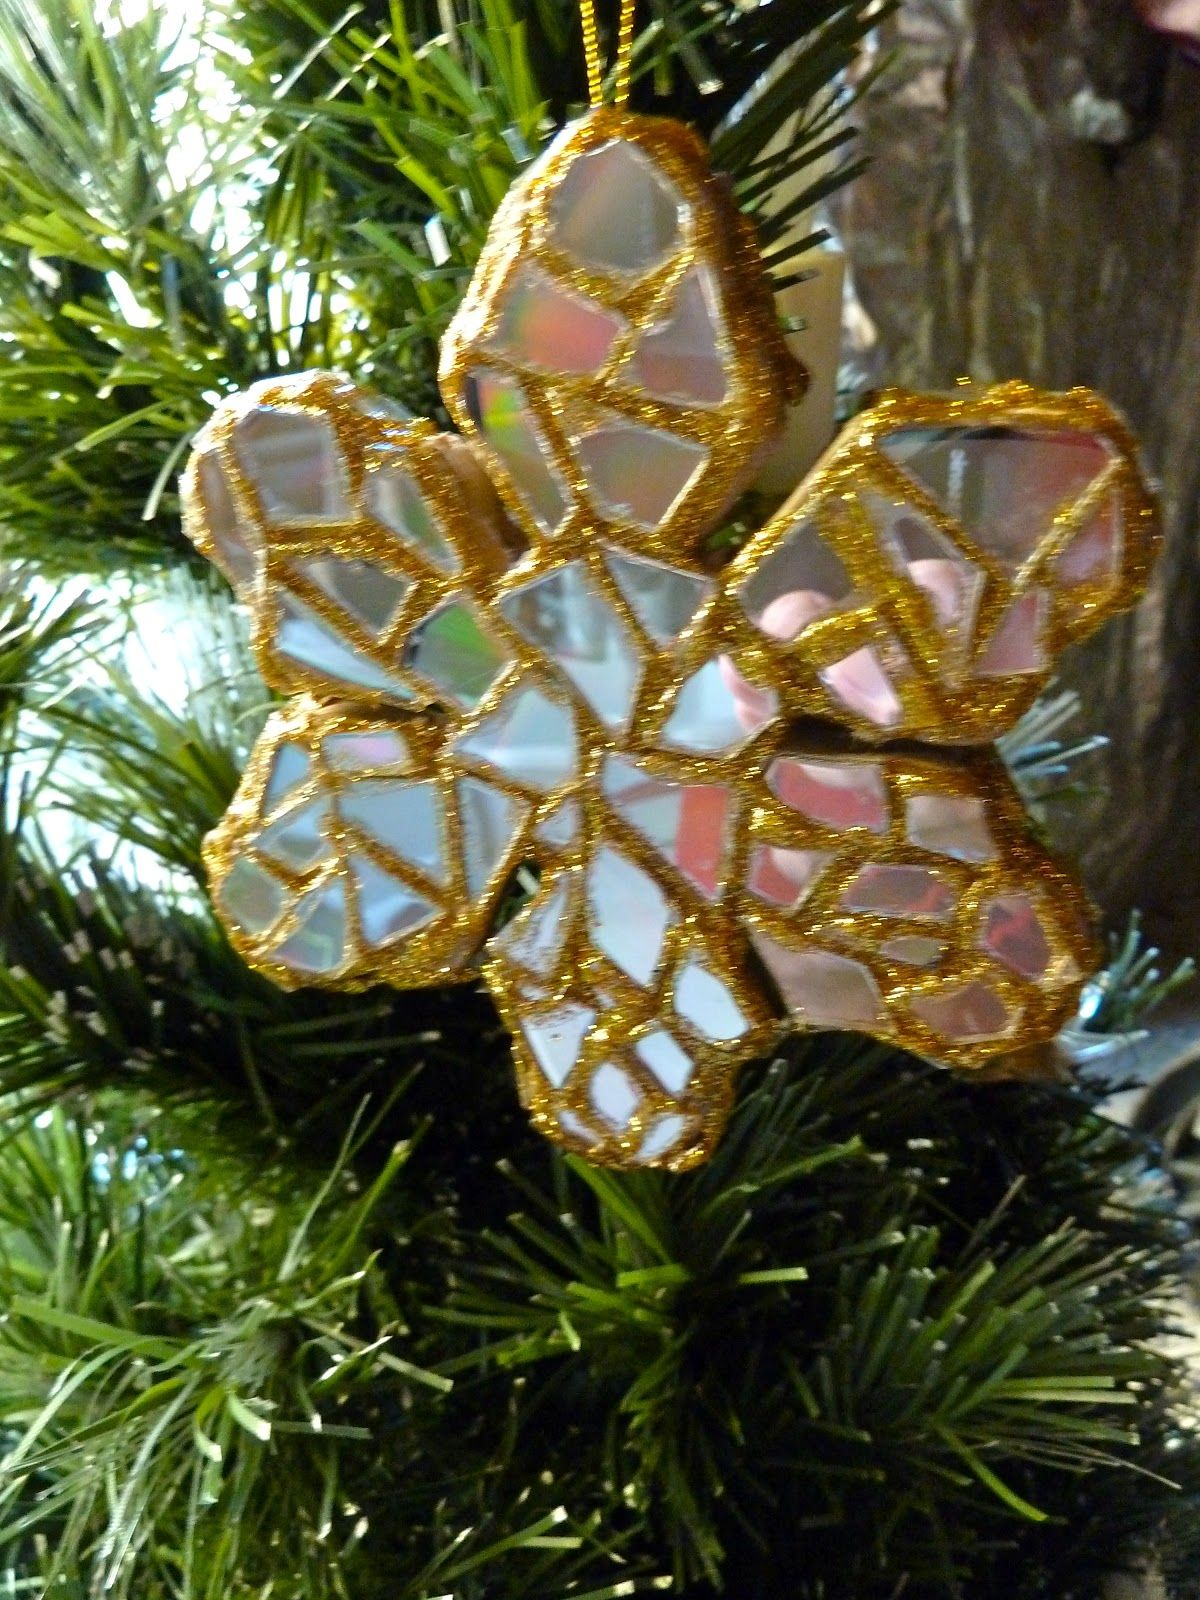 Recycled CD snowflake ornament